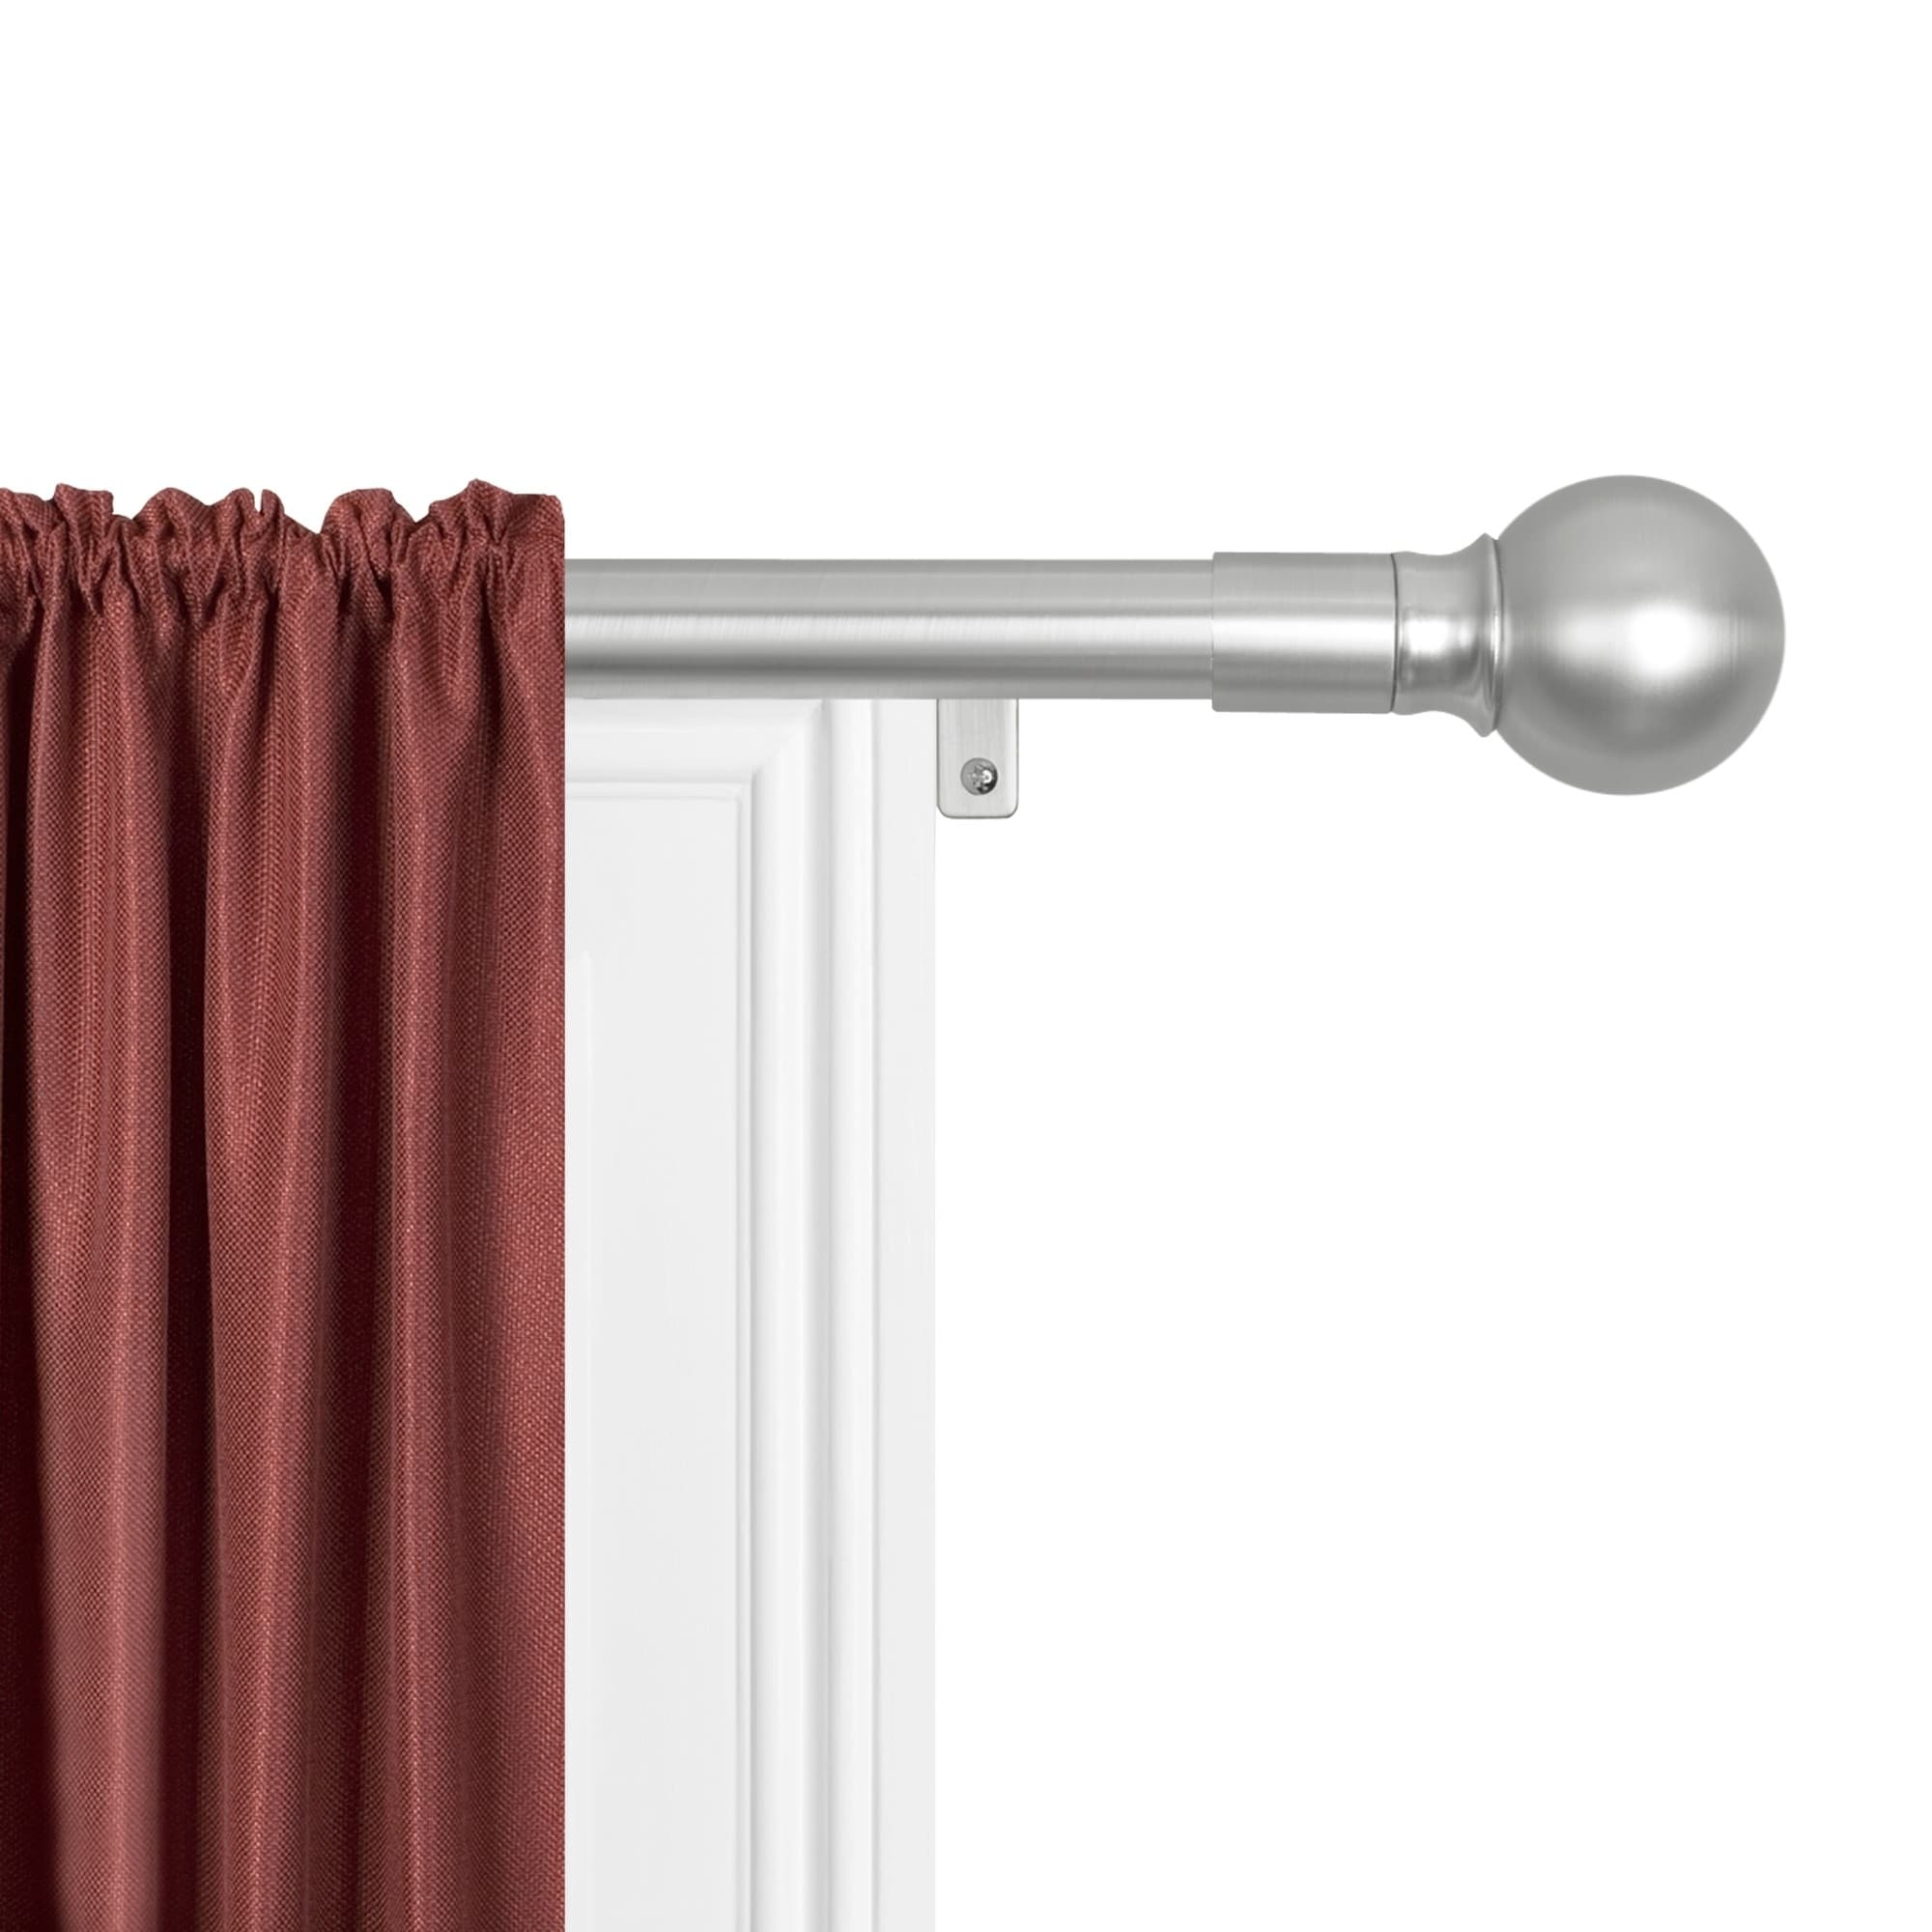 Telescopic L-shaped Shower Curtain Rod Maytex Smart Rods Easy Install Extendable Drapery Rod 18 48 Inches